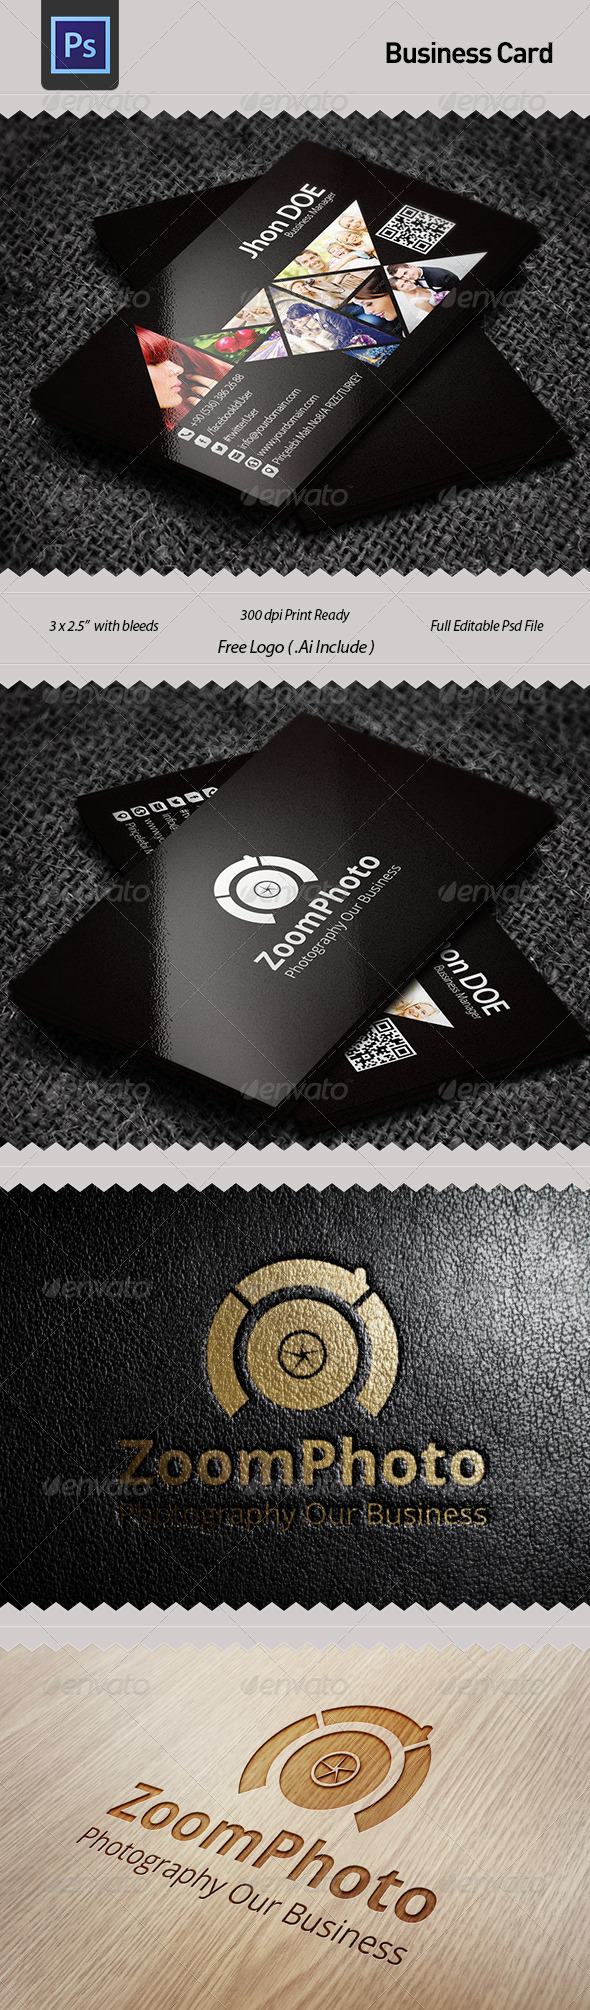 GraphicRiver Business Card 5896704